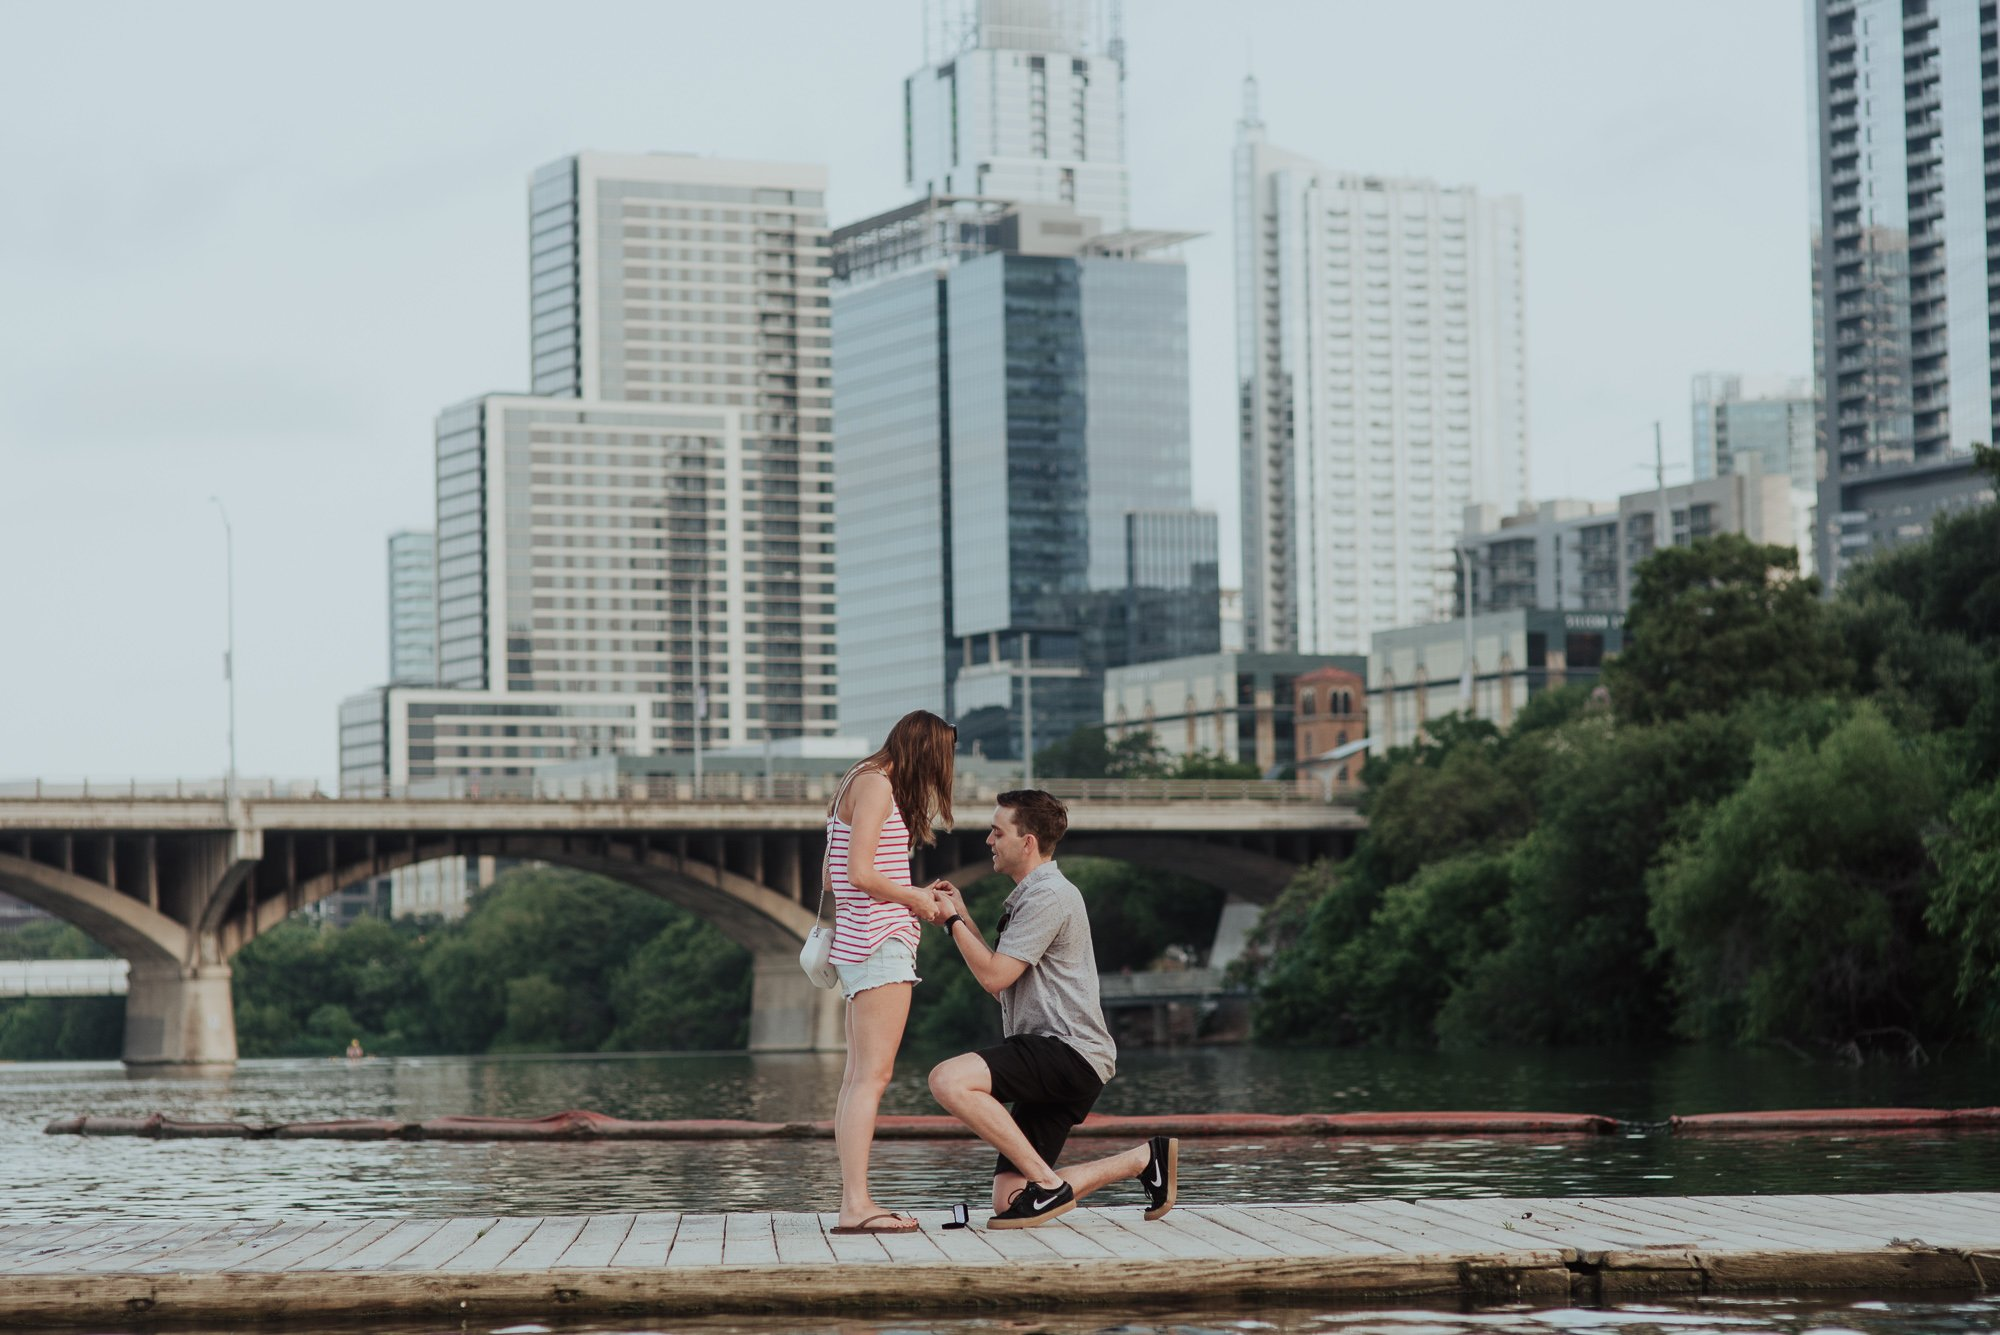 downtown austin proposal photography, austin proposal photographer, marriage proposal with a view of the austin skyline